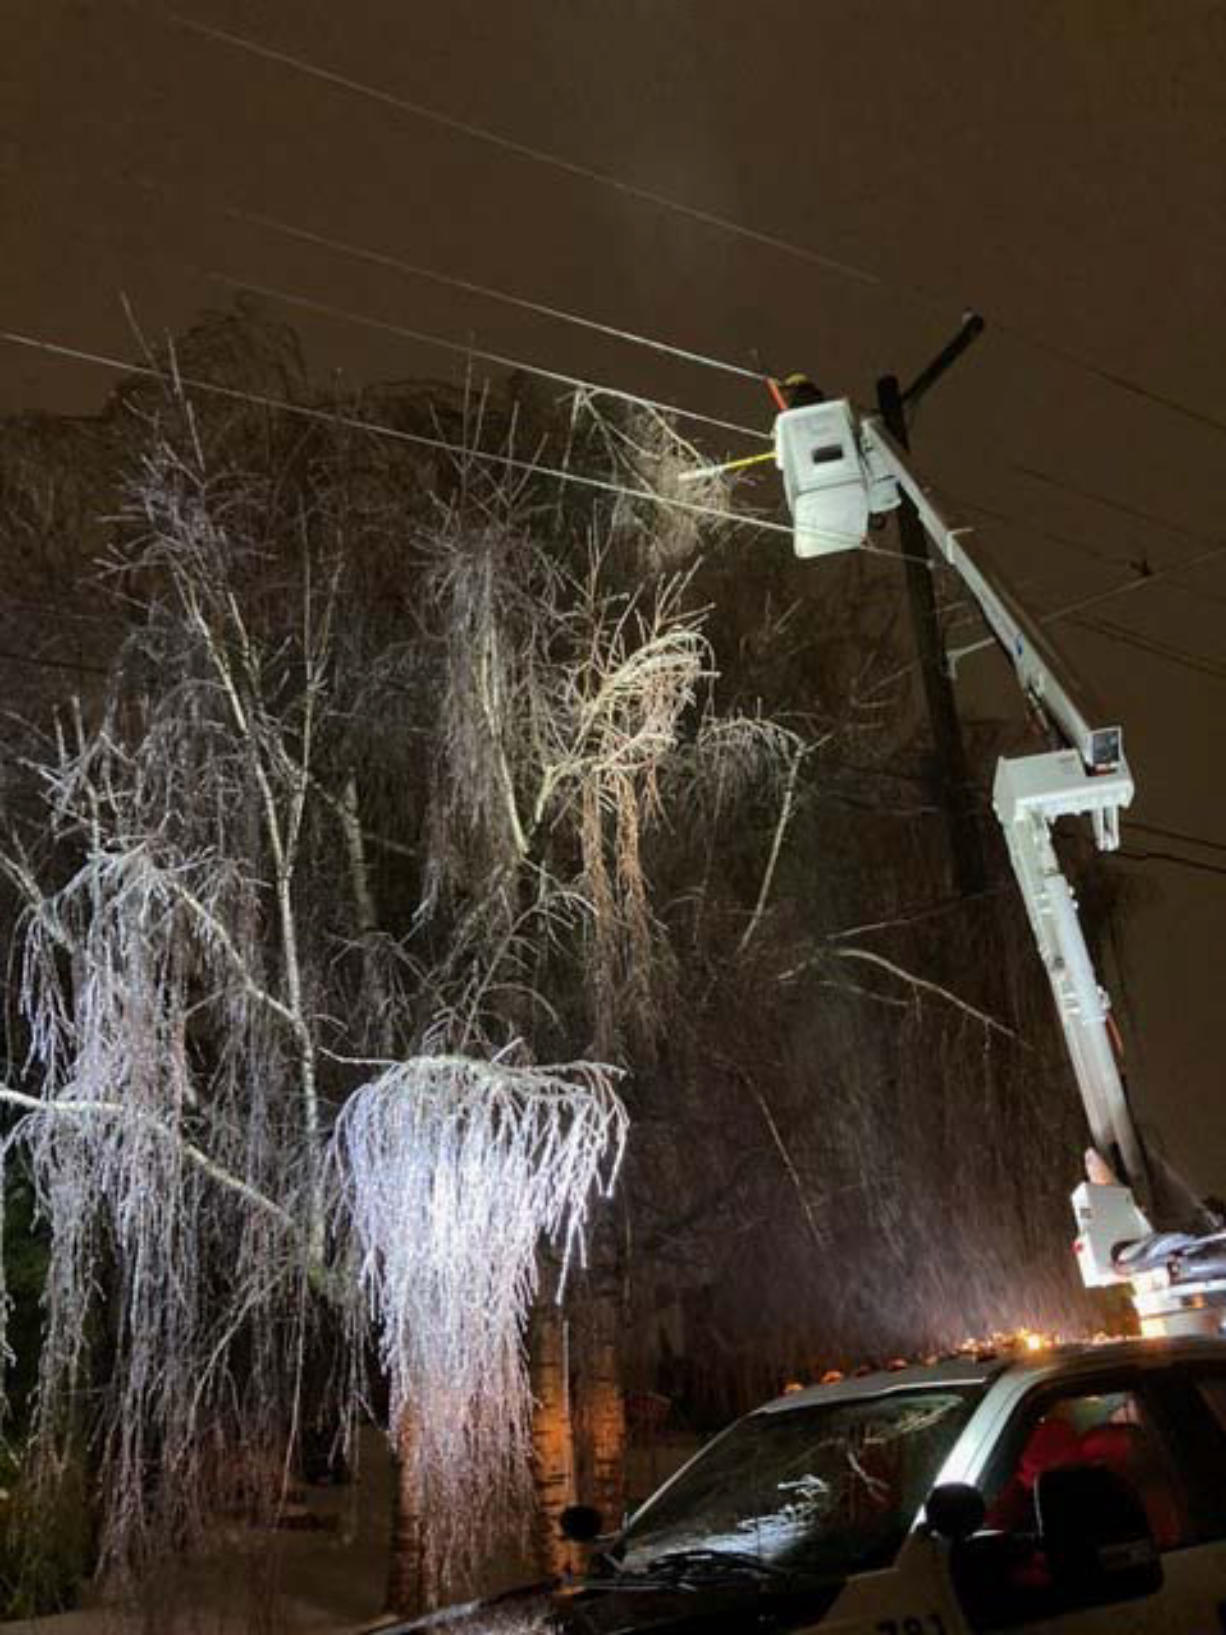 Clark County Public Utilities crews are continuing to work around the clock to restore power to its customers following this weekend's winter weather and ongoing thaw. A spokesman said some roads are still inaccessible due to fallen trees.